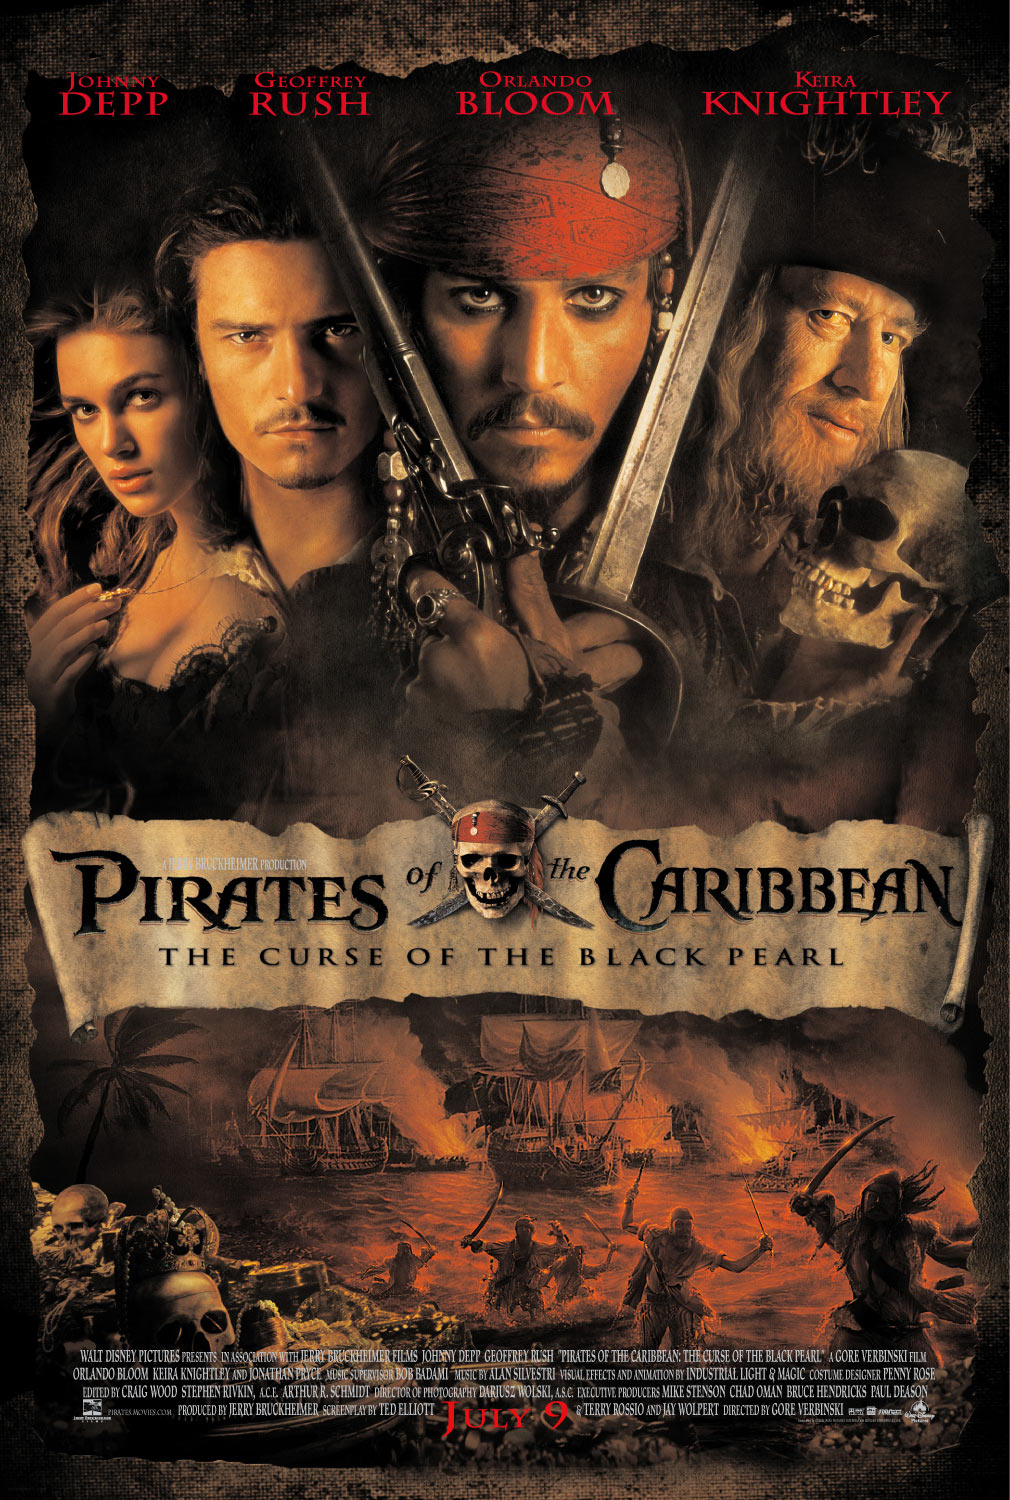 pirates of the caribbean poster high quality HD printable wallpapers official poster dark all characters